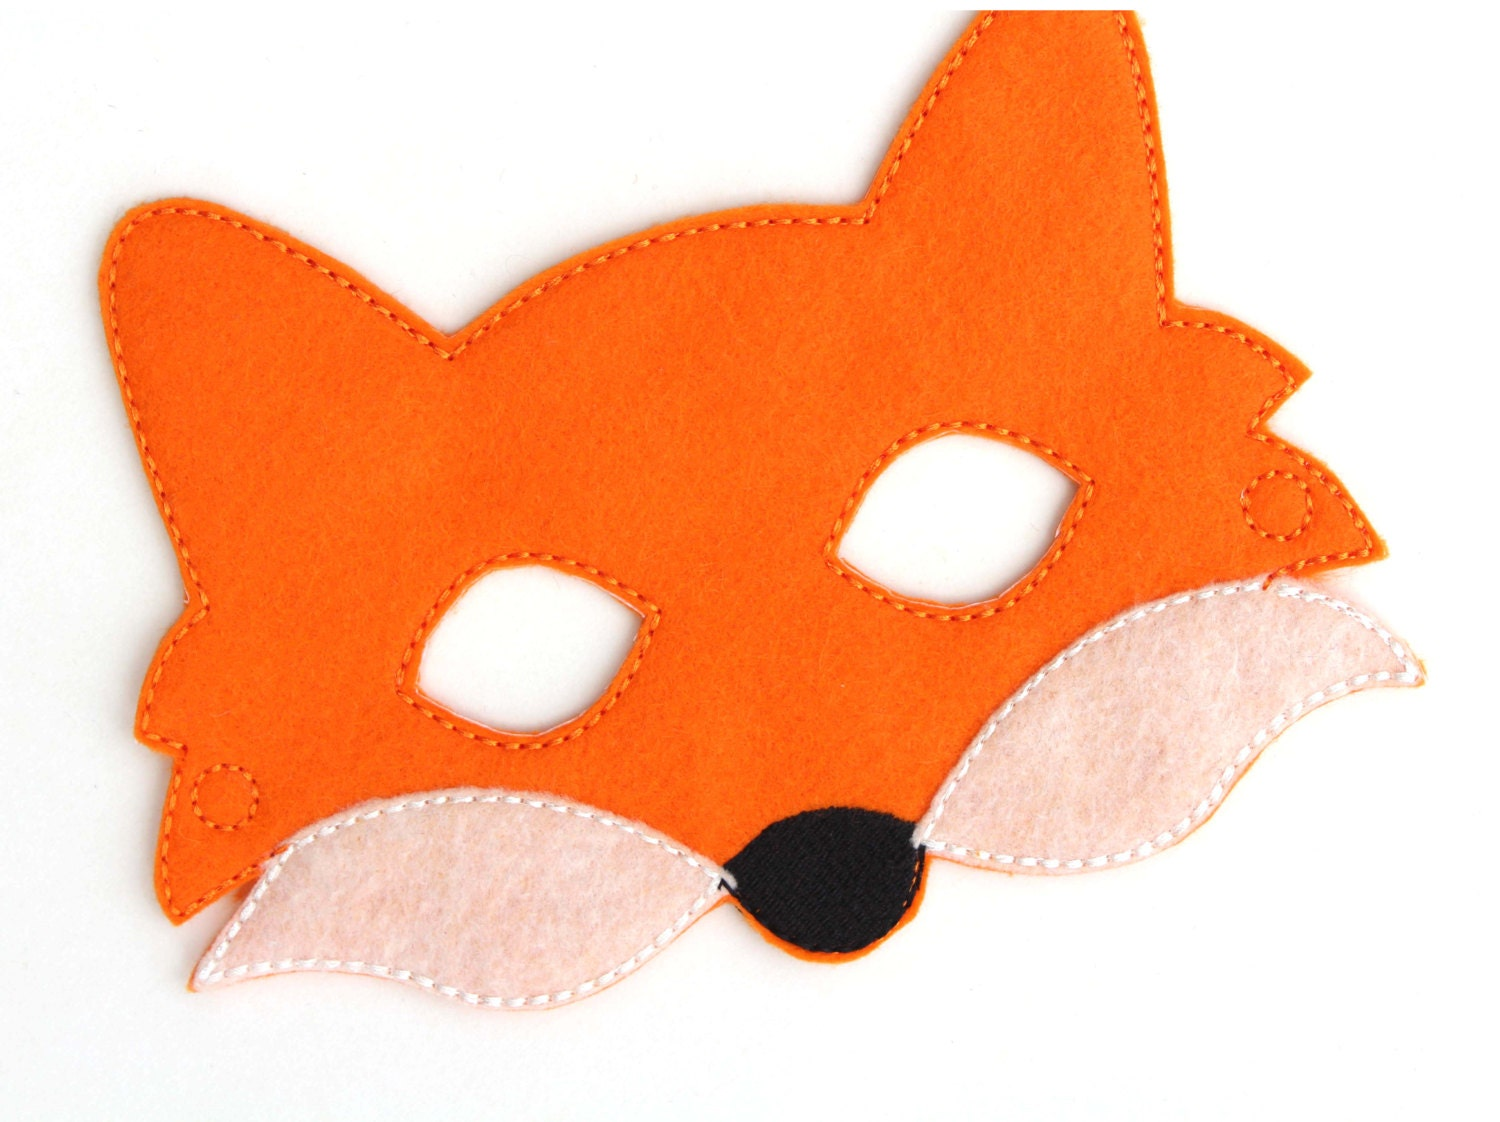 TOKYO-T Fox Mask Kids Zootopia Party Supplies Fabric Masquerade Halloween 5 Set. by TOKYO-T. $ $ 25 50 Prime. FREE Shipping on eligible orders. Only 17 left in stock - order soon. Product Features Soft and durable felt fox mask for kids, set of 5.